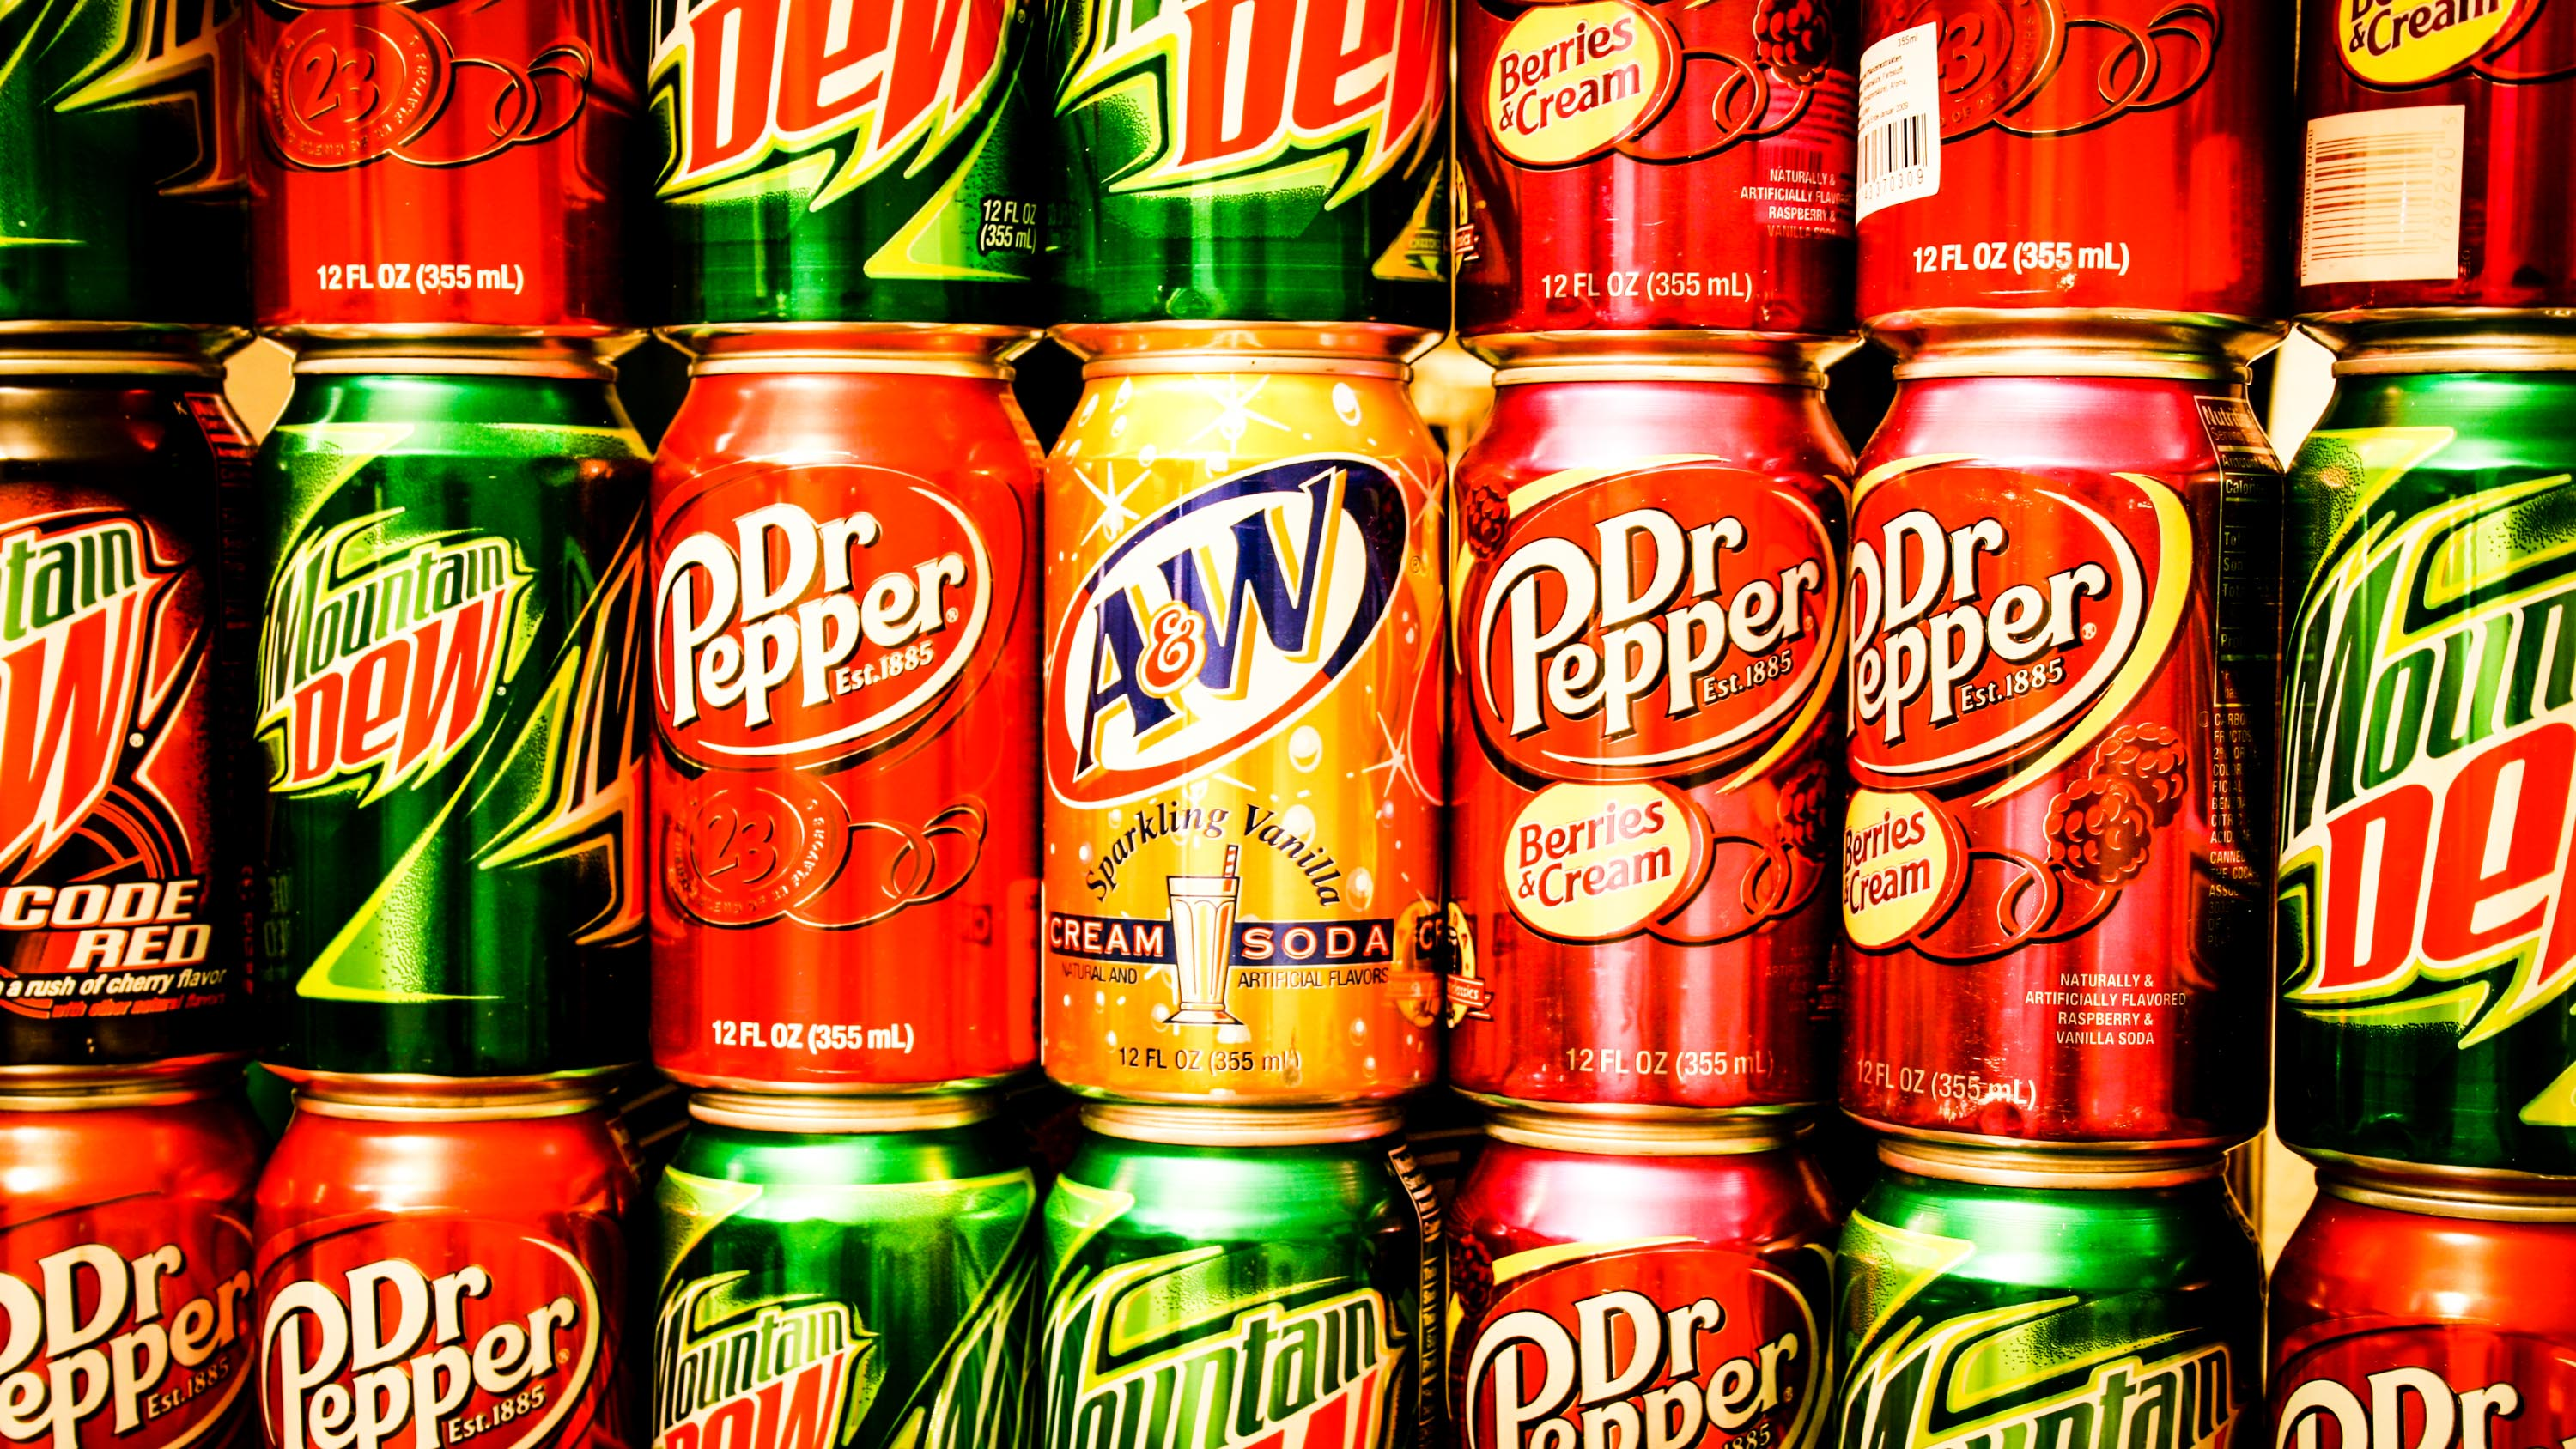 Soft drink cans are shown on store shelves in a file photo